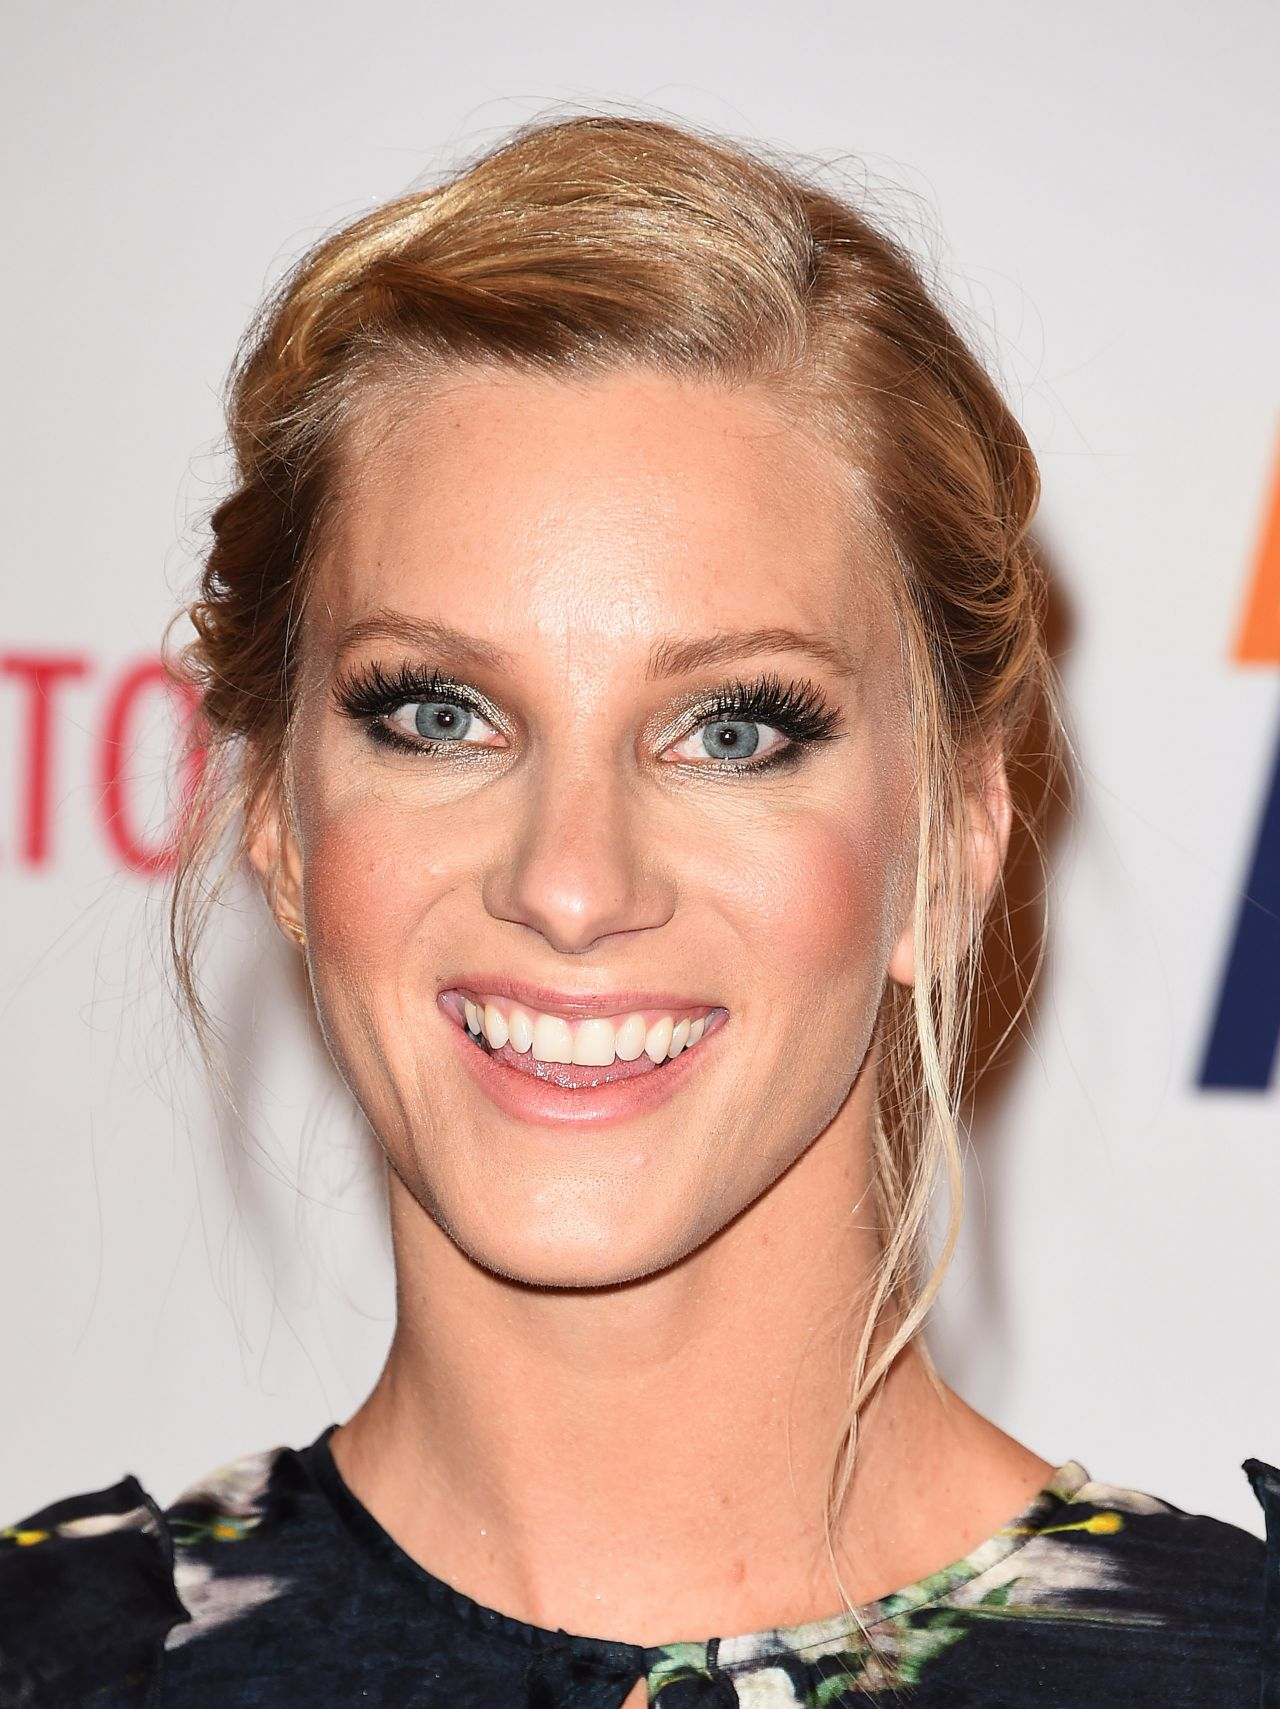 Heather Morris Race To Erase Ms Gala In Beverly Hills 05